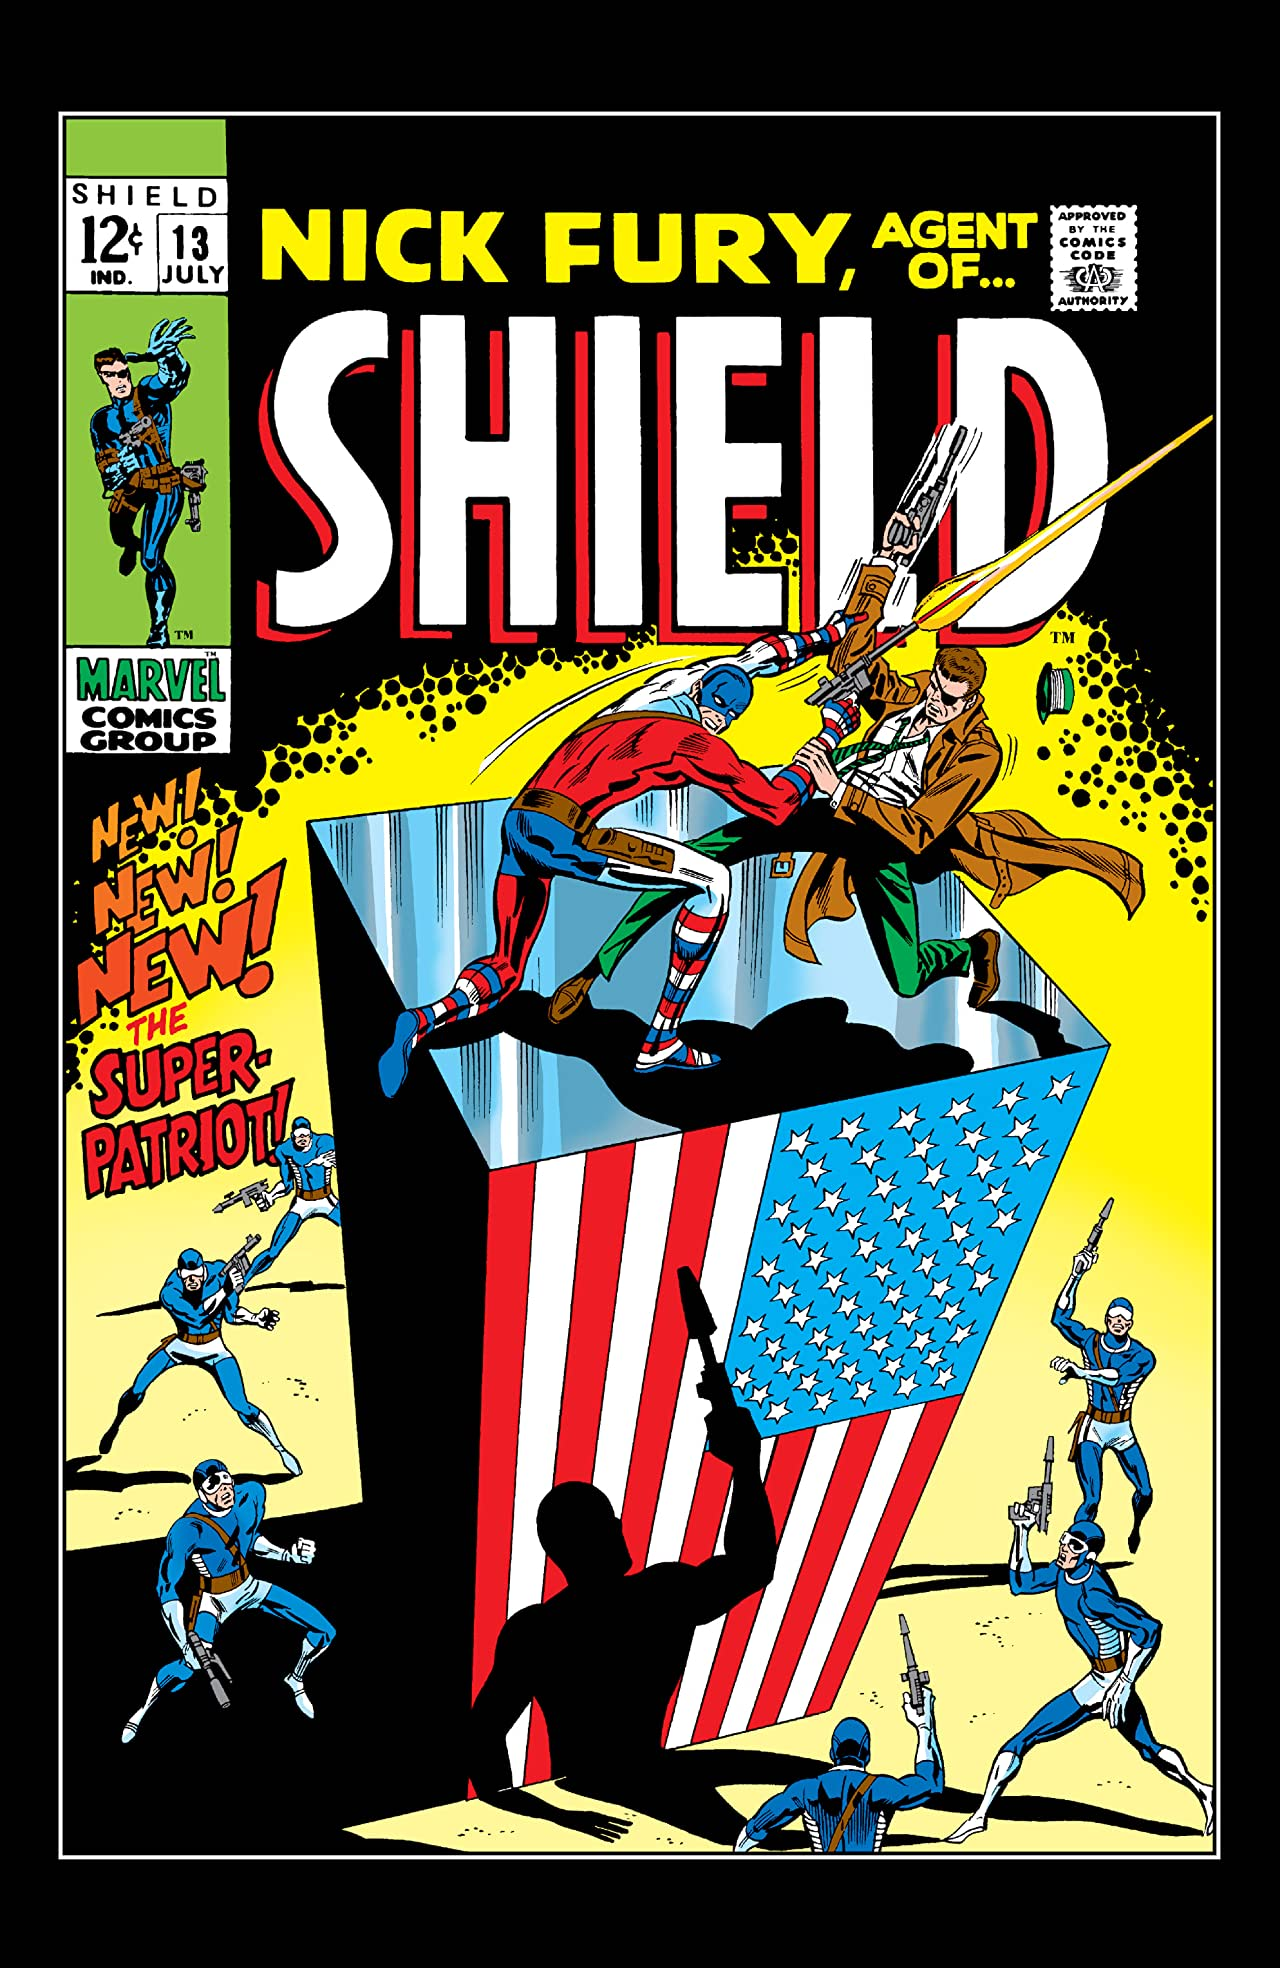 Nick Fury: Agent of S.H.I.E.L.D. (1968-1971) #13